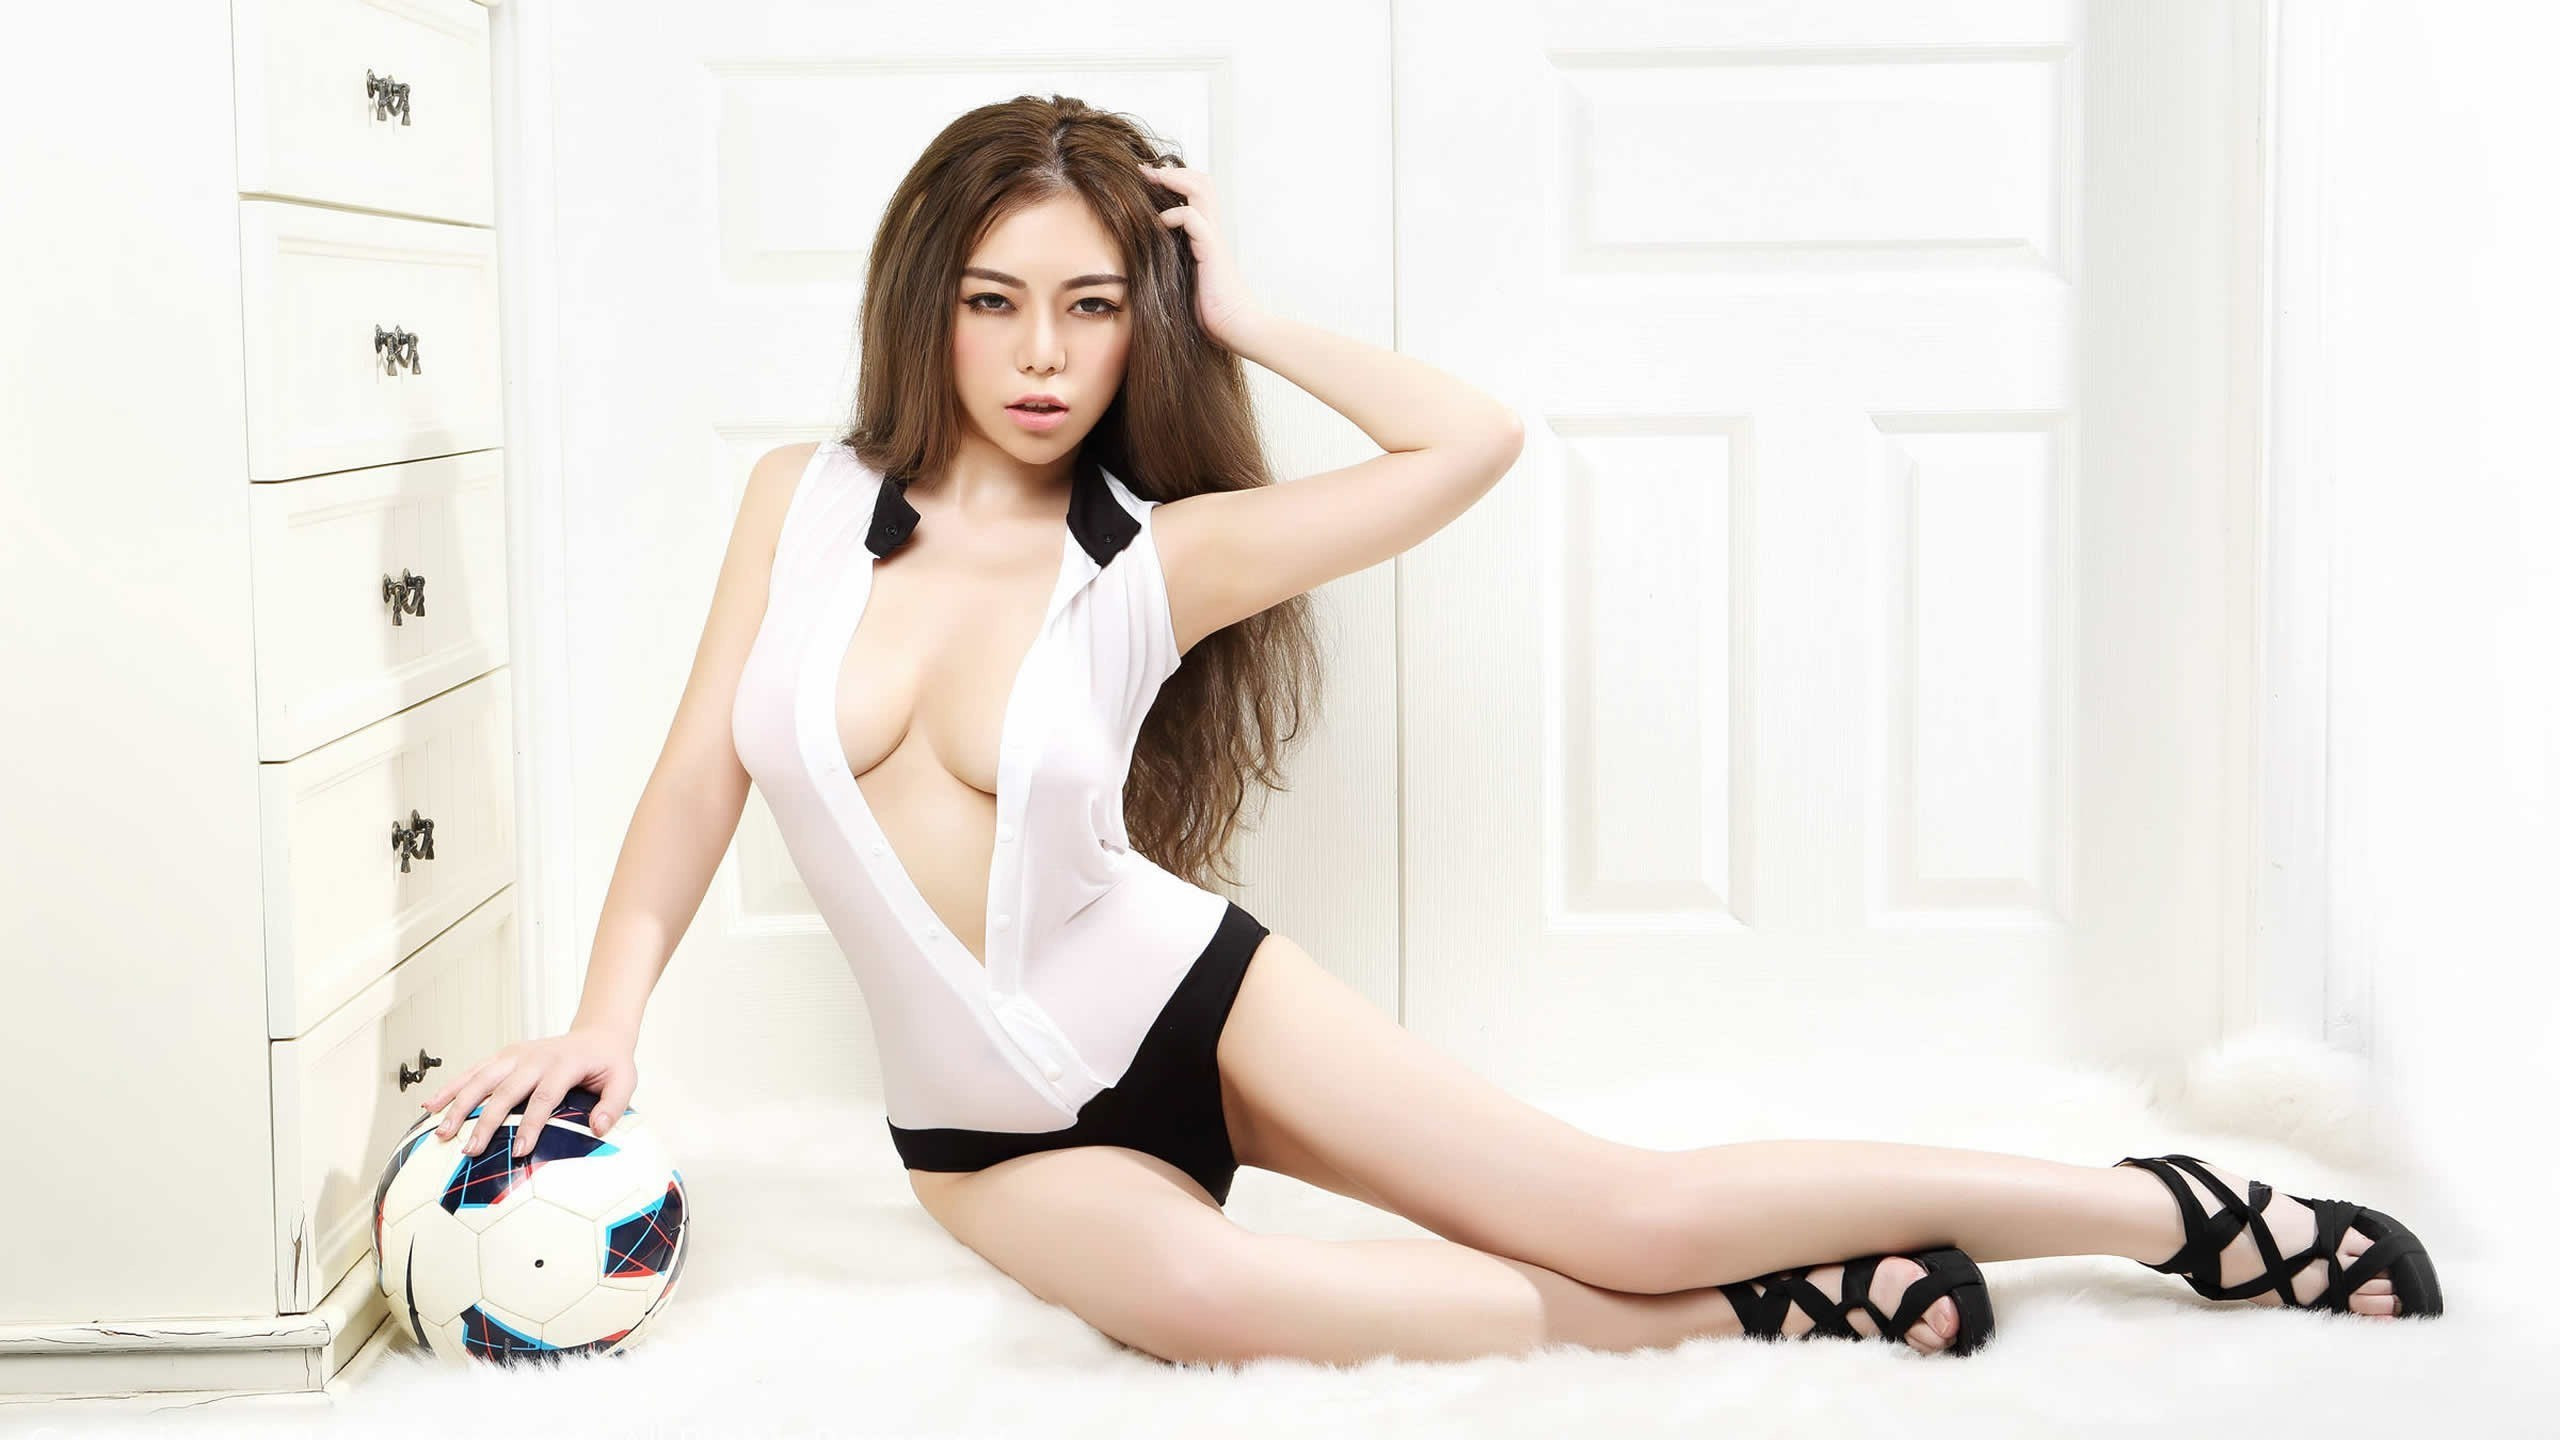 sexy big boobs asian model high heels 2560x1440